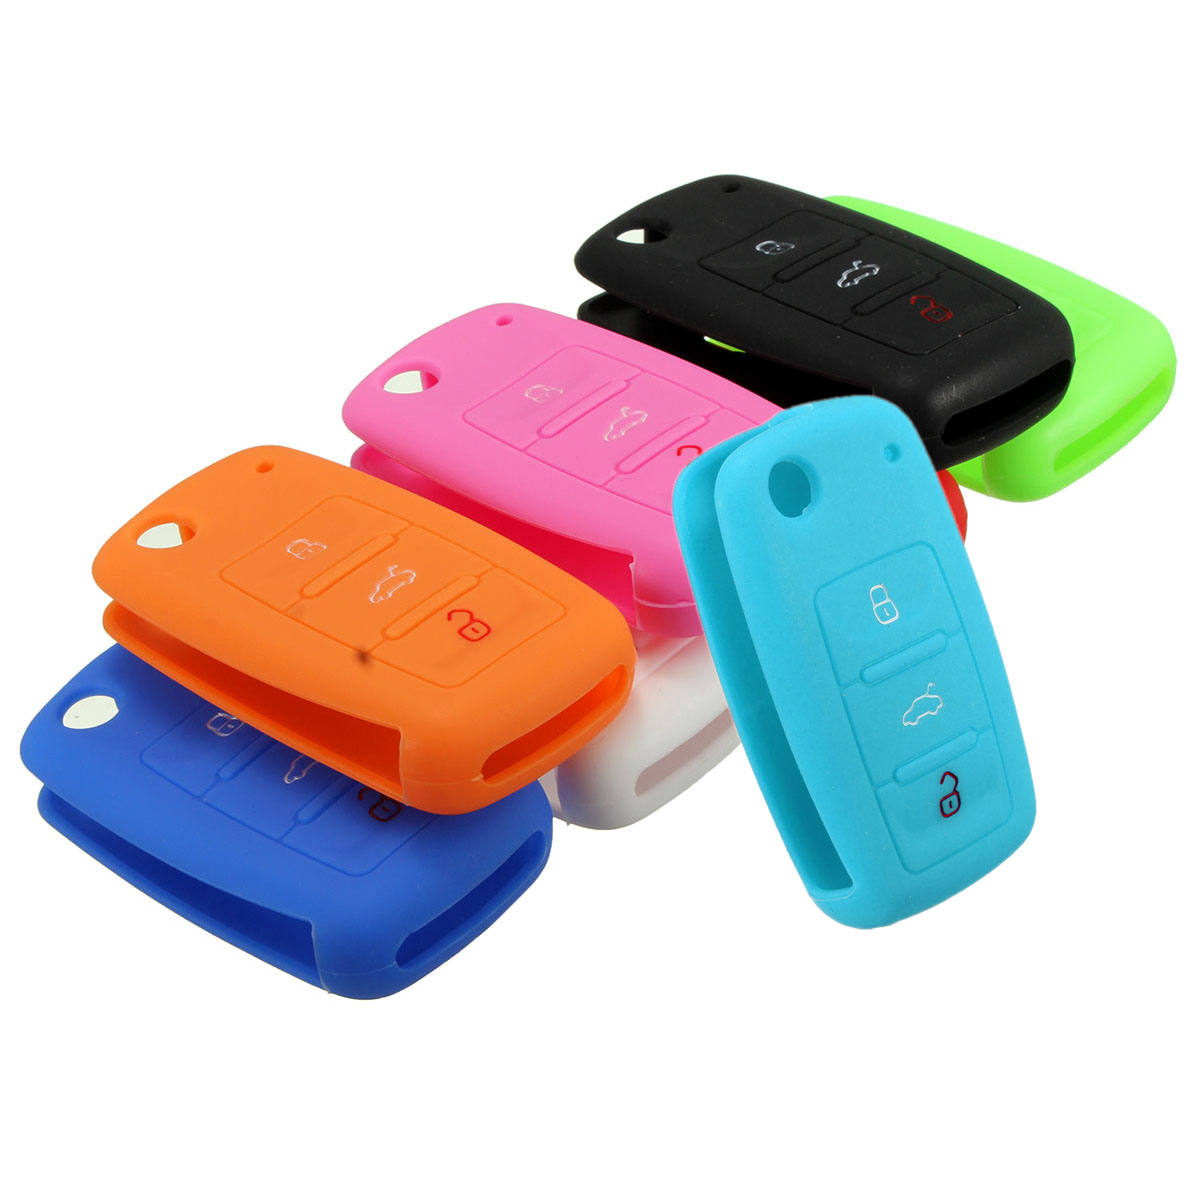 Silicone 3 Button Remote Key Cover Shell for VW/MK6/Golf/Jetta/Passat/Beetle autoprofi органайзер в багажник travel ковролиновый 50х13х20см чёрный 1 24